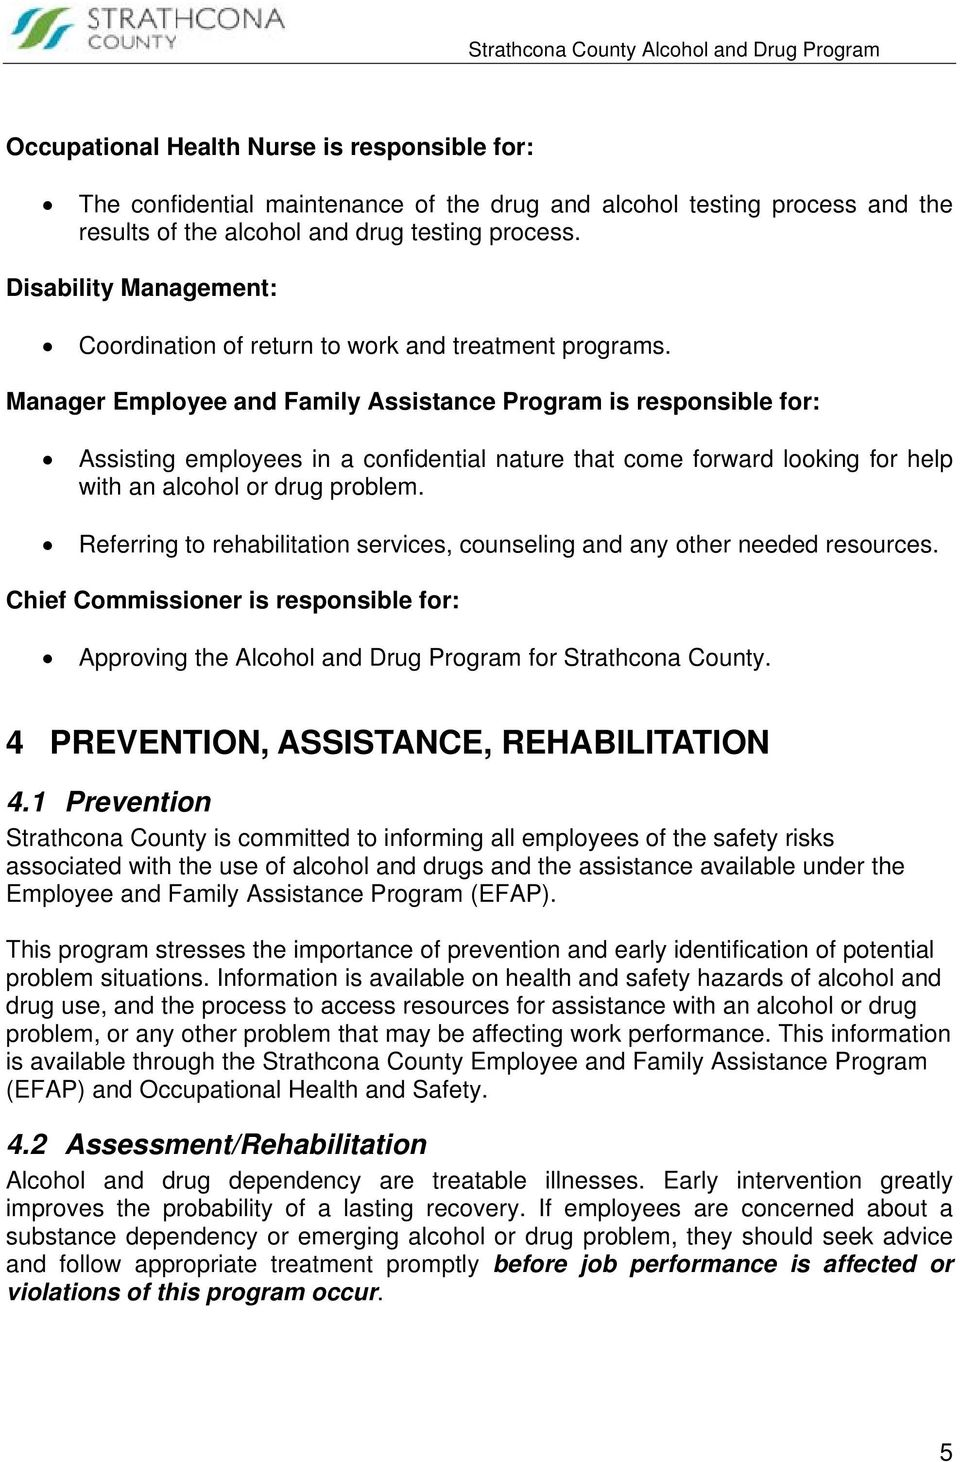 Manager Employee and Family Assistance Program is responsible for: Assisting employees in a confidential nature that come forward looking for help with an alcohol or drug problem.